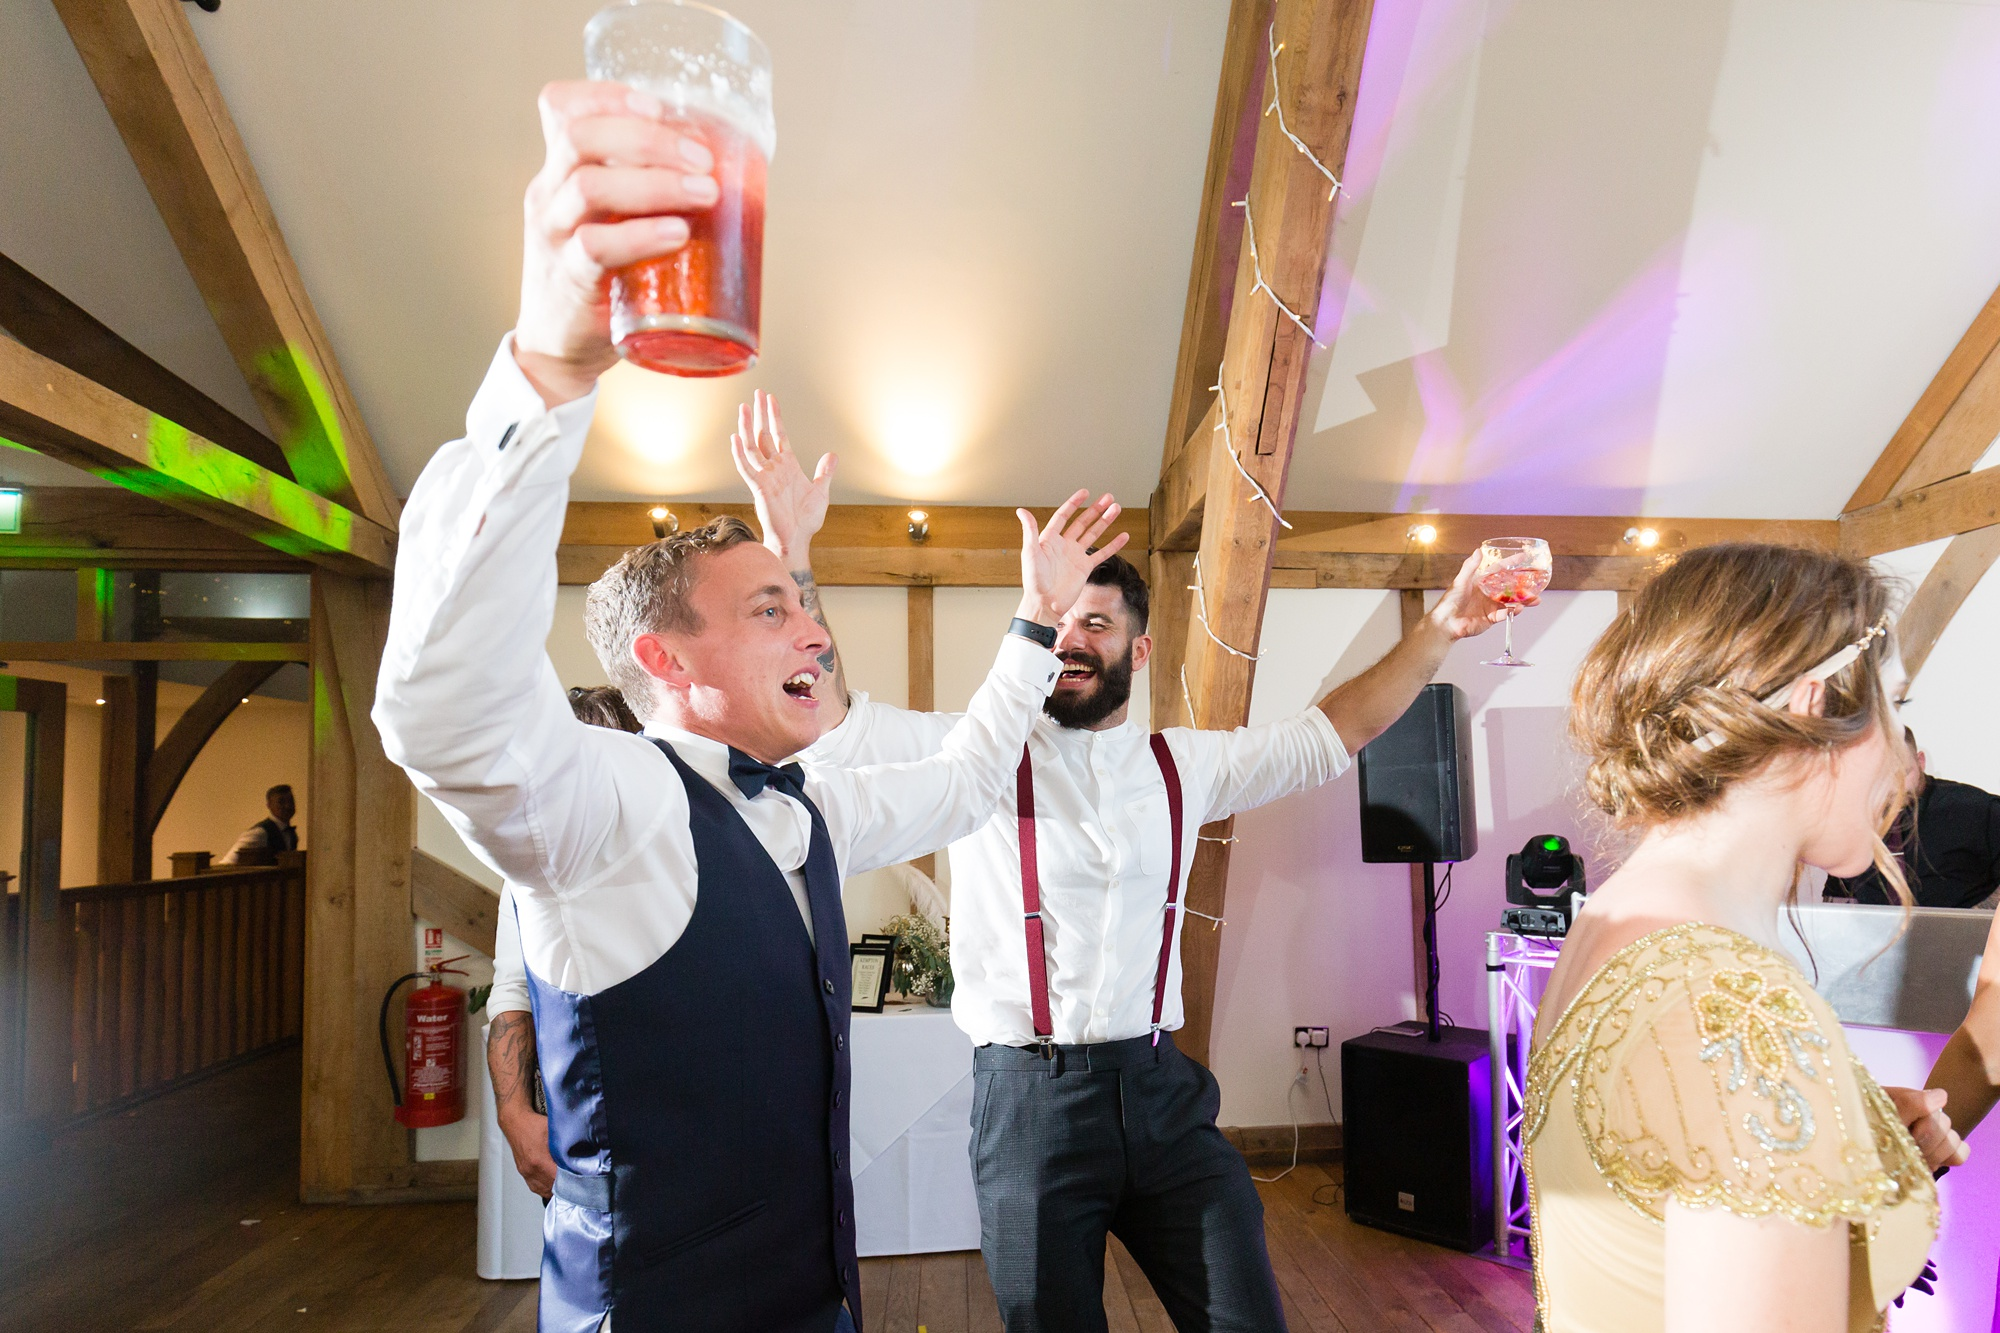 Guests dance holding their beer at wedding.